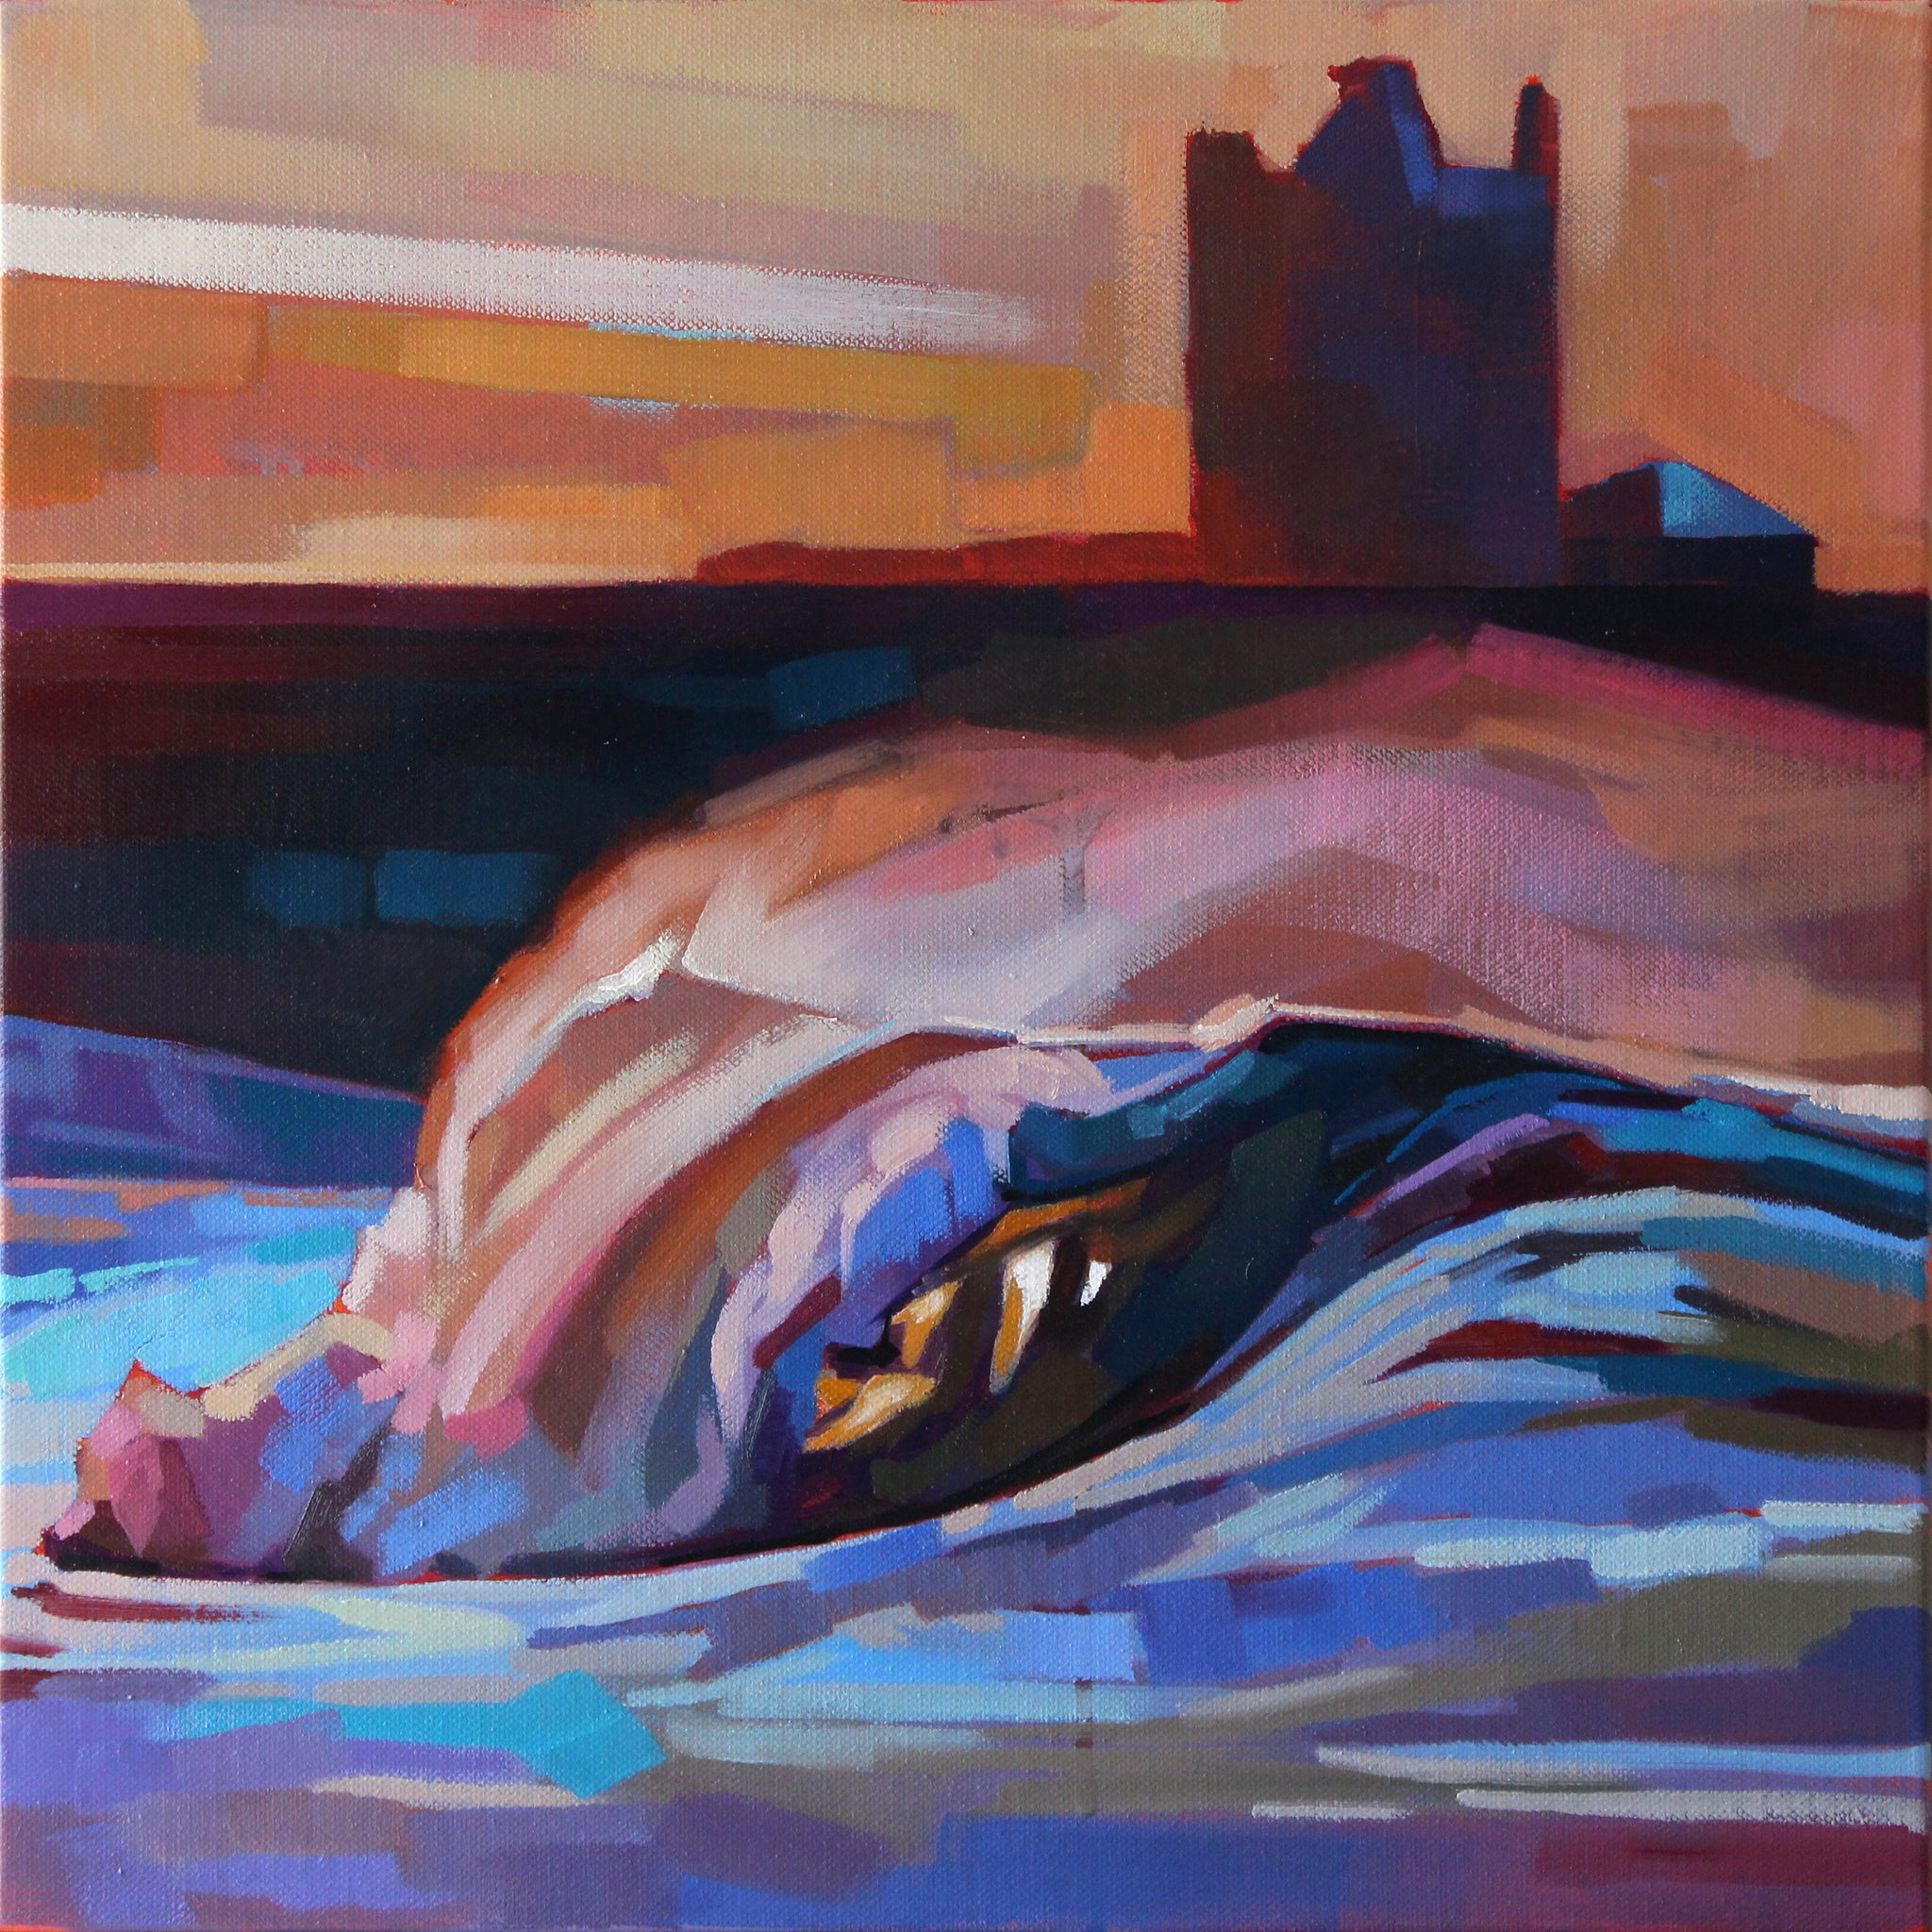 Easkey Left - Contemporary art from Ireland. Paintings & prints by Irish seascape & landscape artist Kevin Lowery.